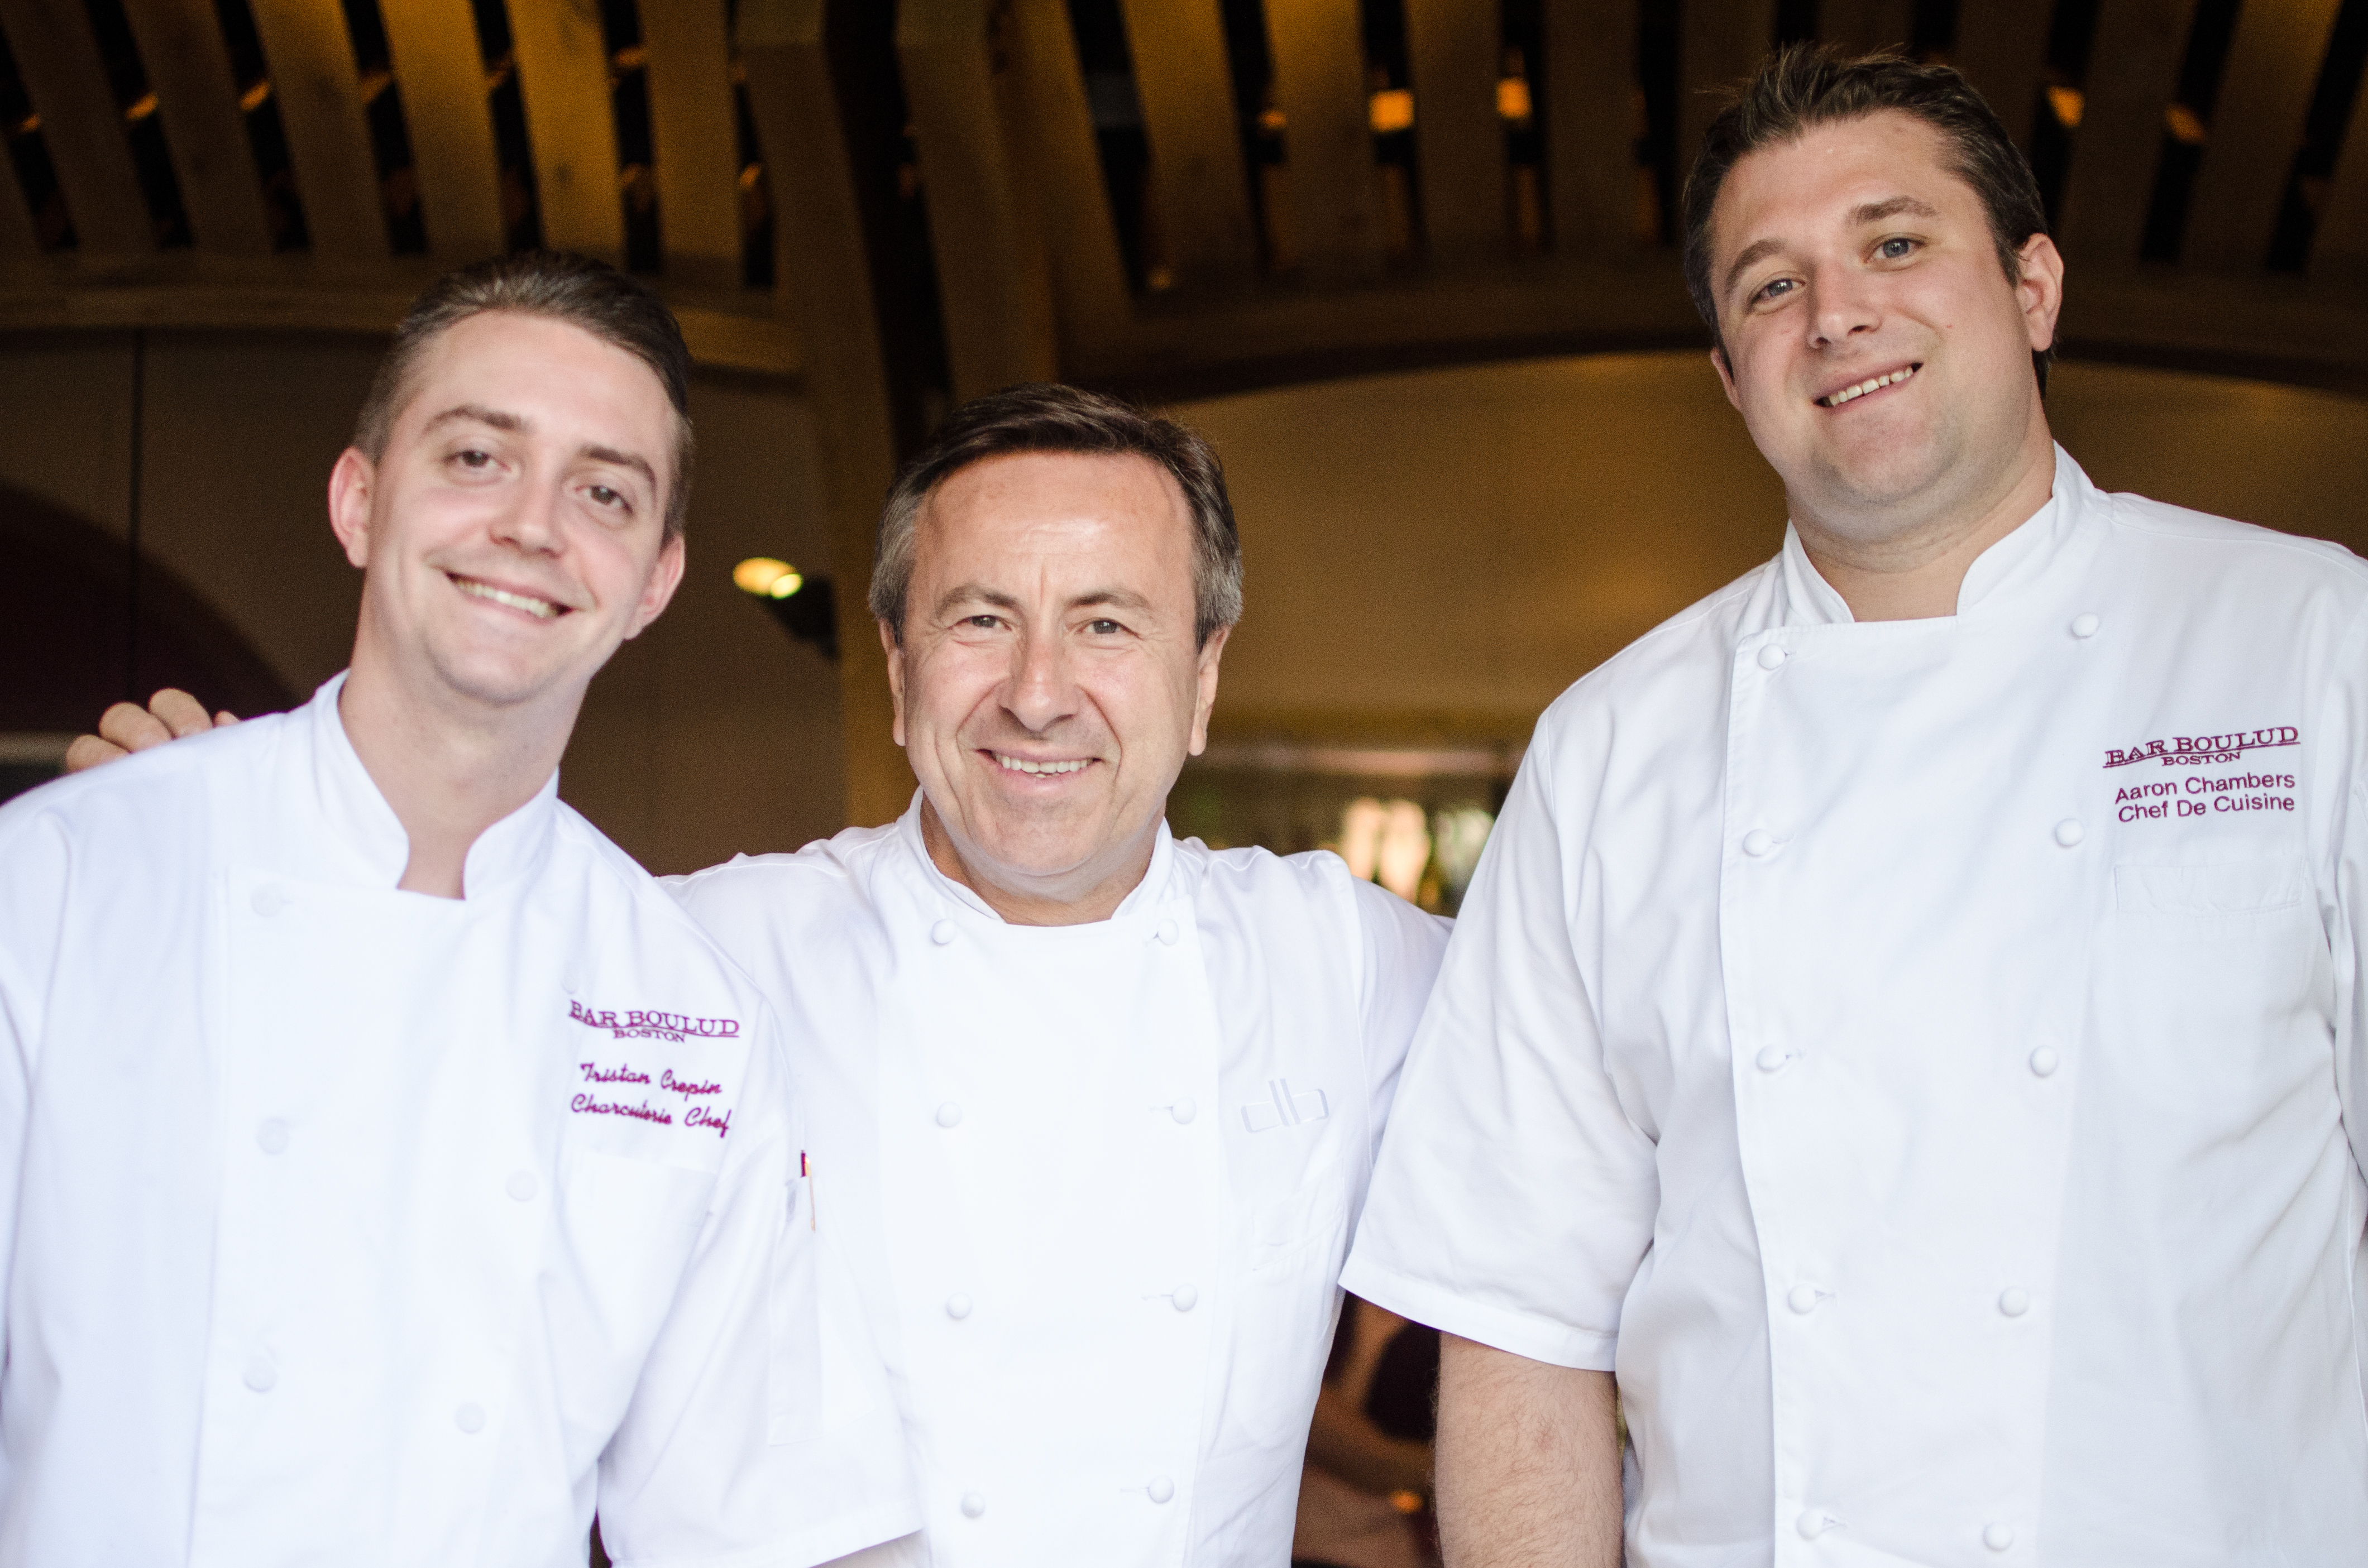 From left to right: Tristan Crépin, Daniel Boulud, Aaron Chambers